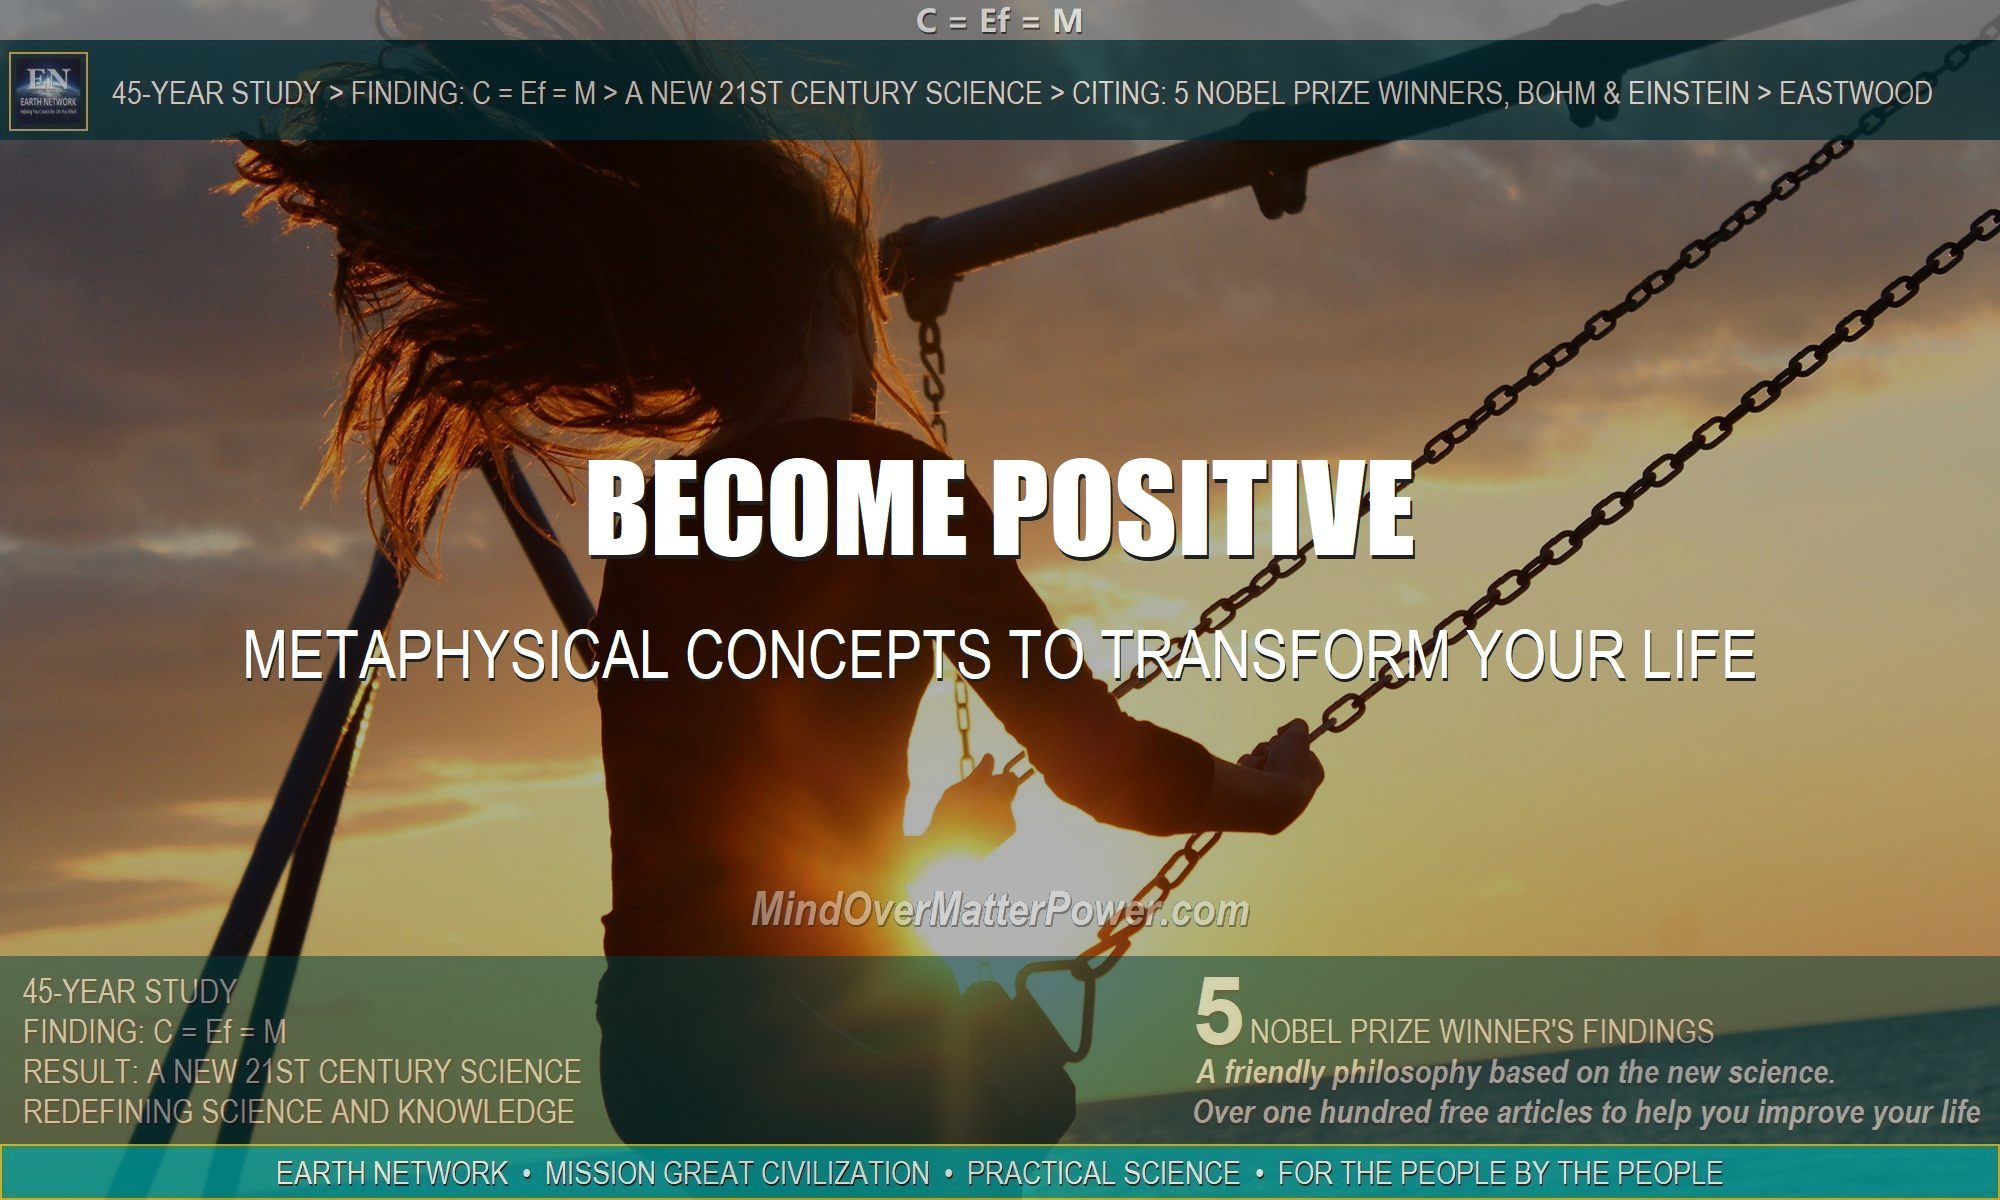 Woman on swing has stopped worry, negative thinking, fear and doubt using metaphysical concepts to transform her life.